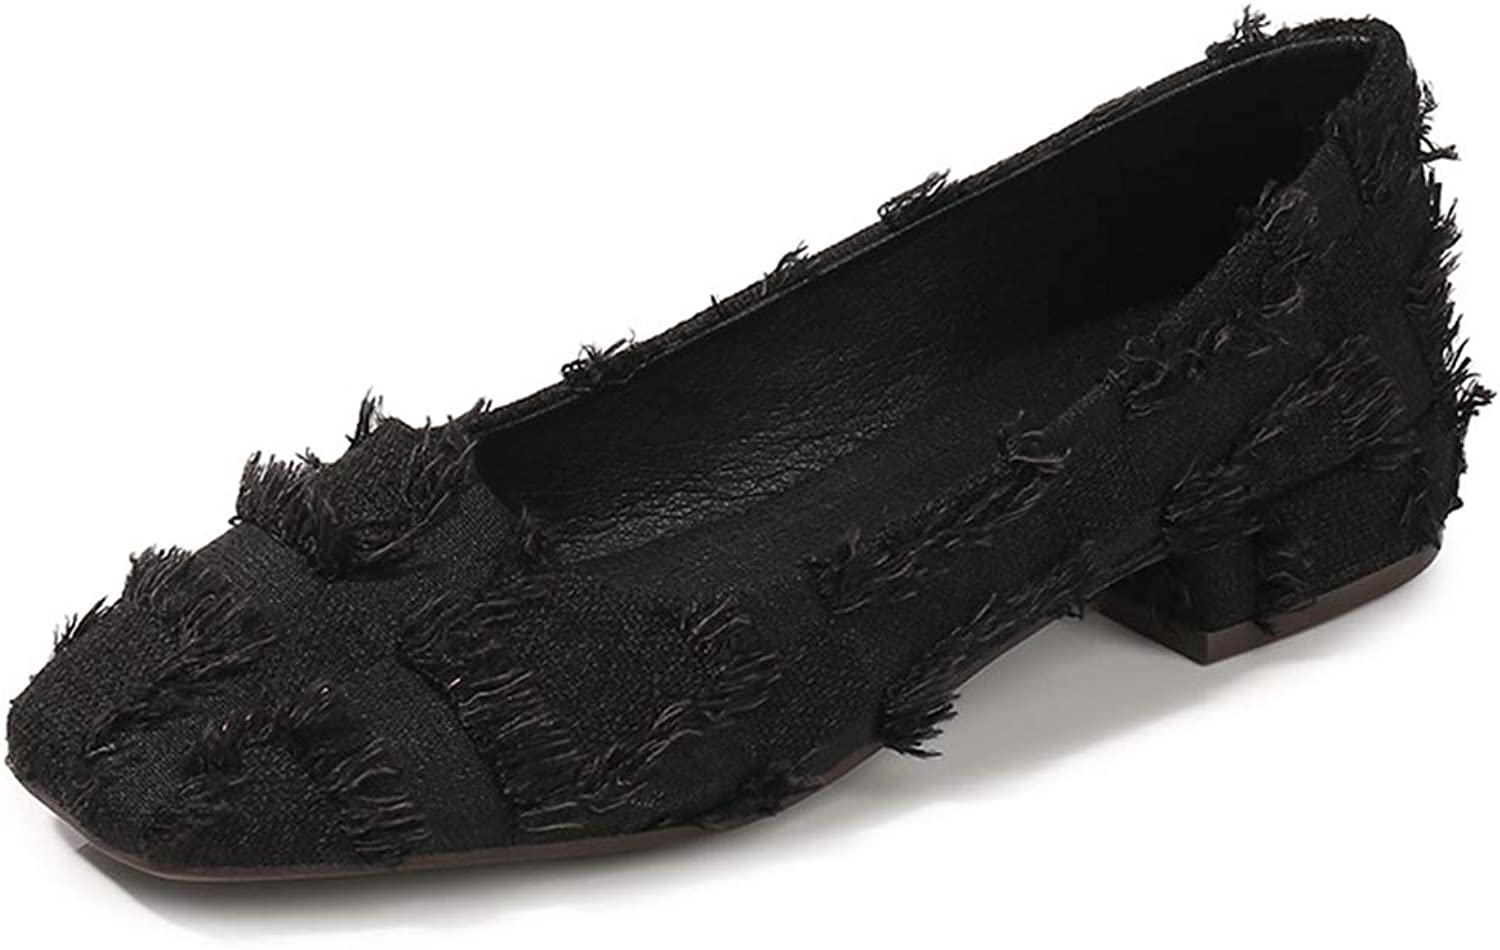 Kyle Walsh Pa Women Flats shoes Low Heel Square Toe Ladies Stylish Office Working Moccasins